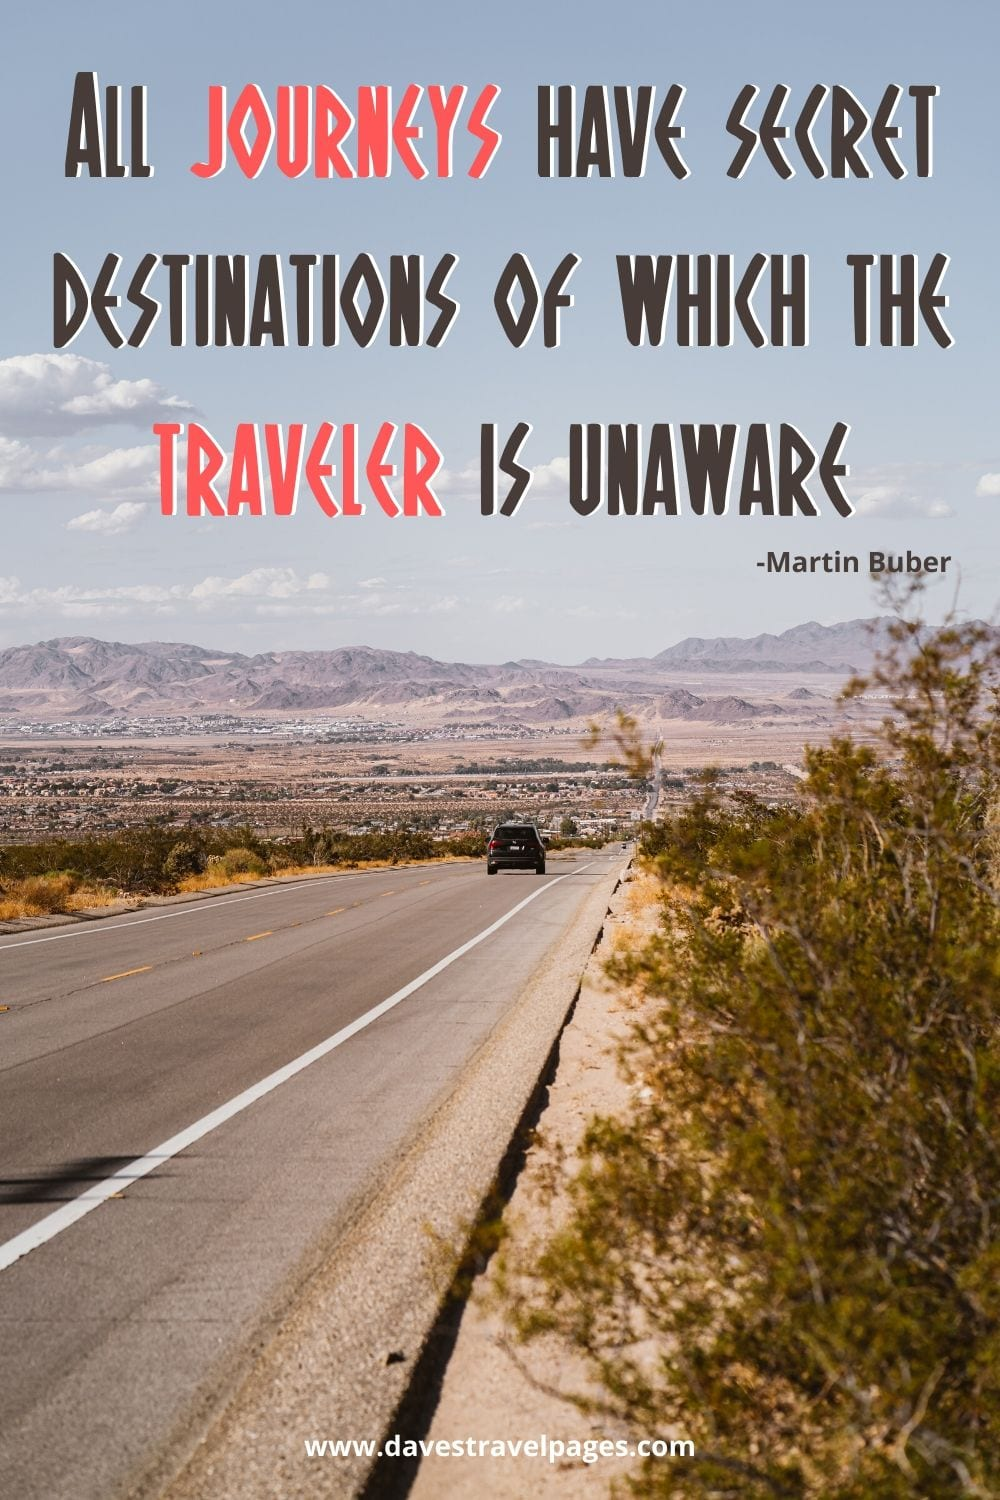 "Journey Quotes: All journeys have secret destinations of which the traveler is unaware."" -Martin Buber"